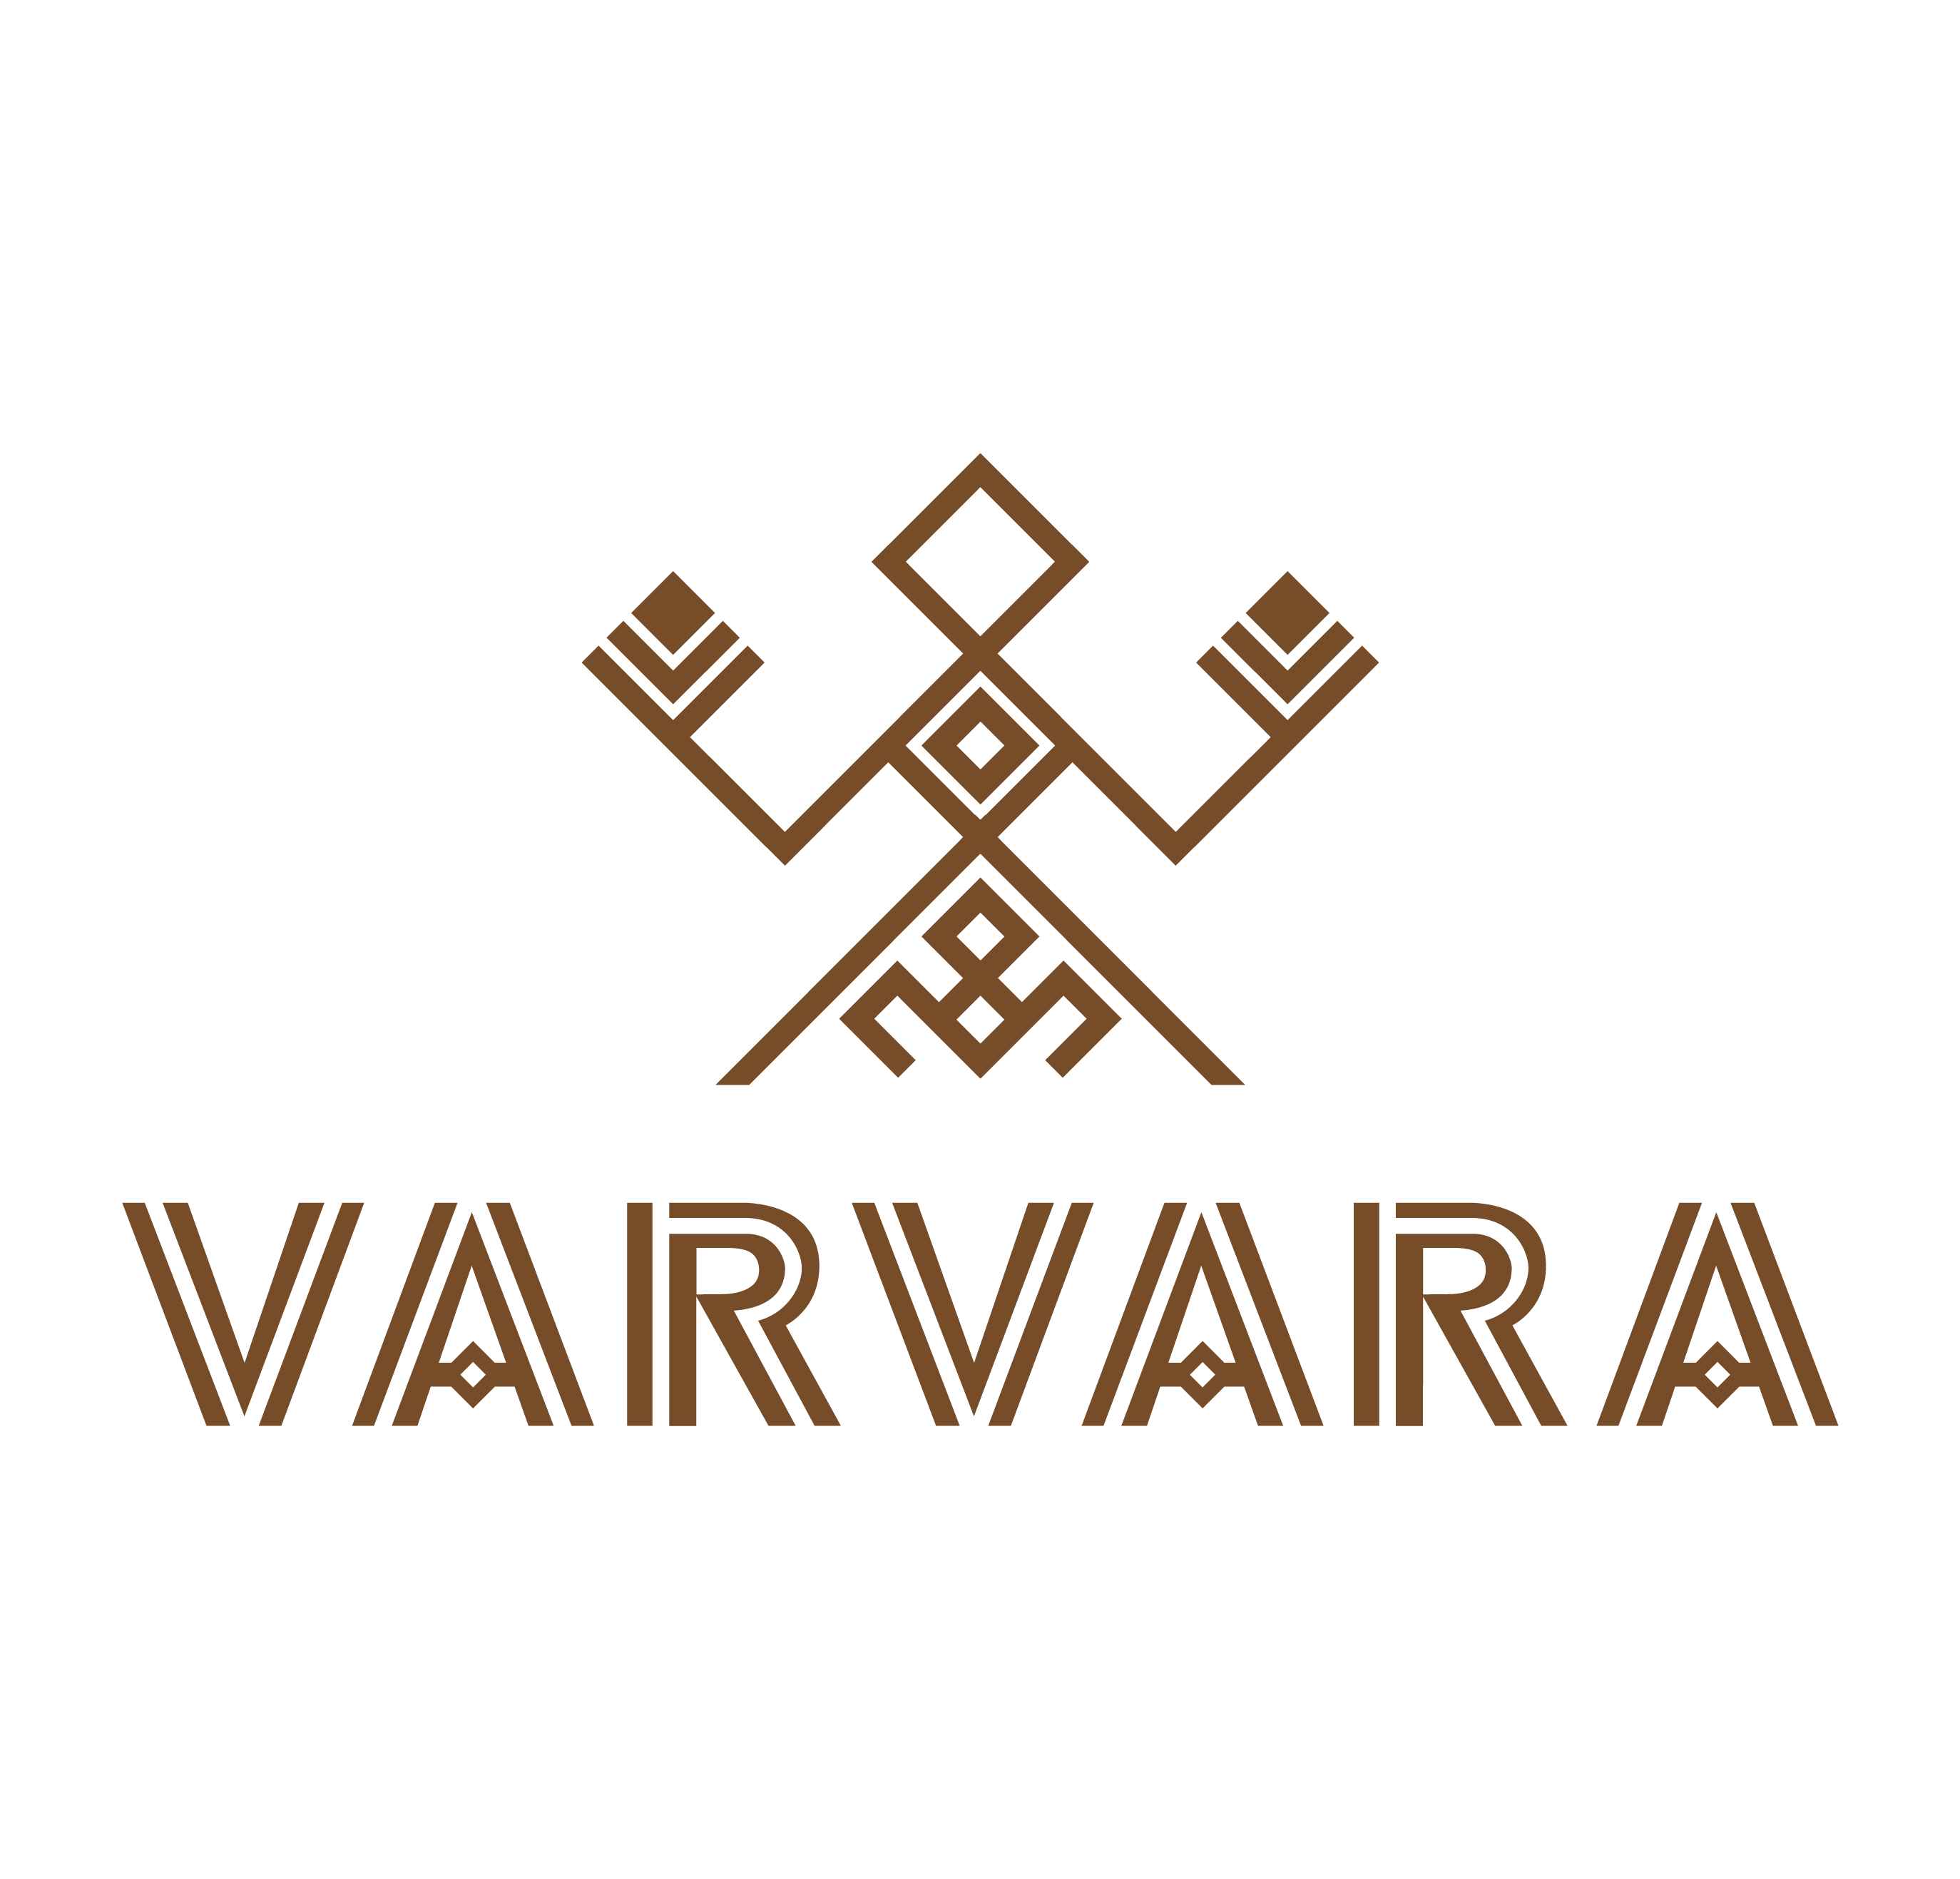 What does the name Varvara mean